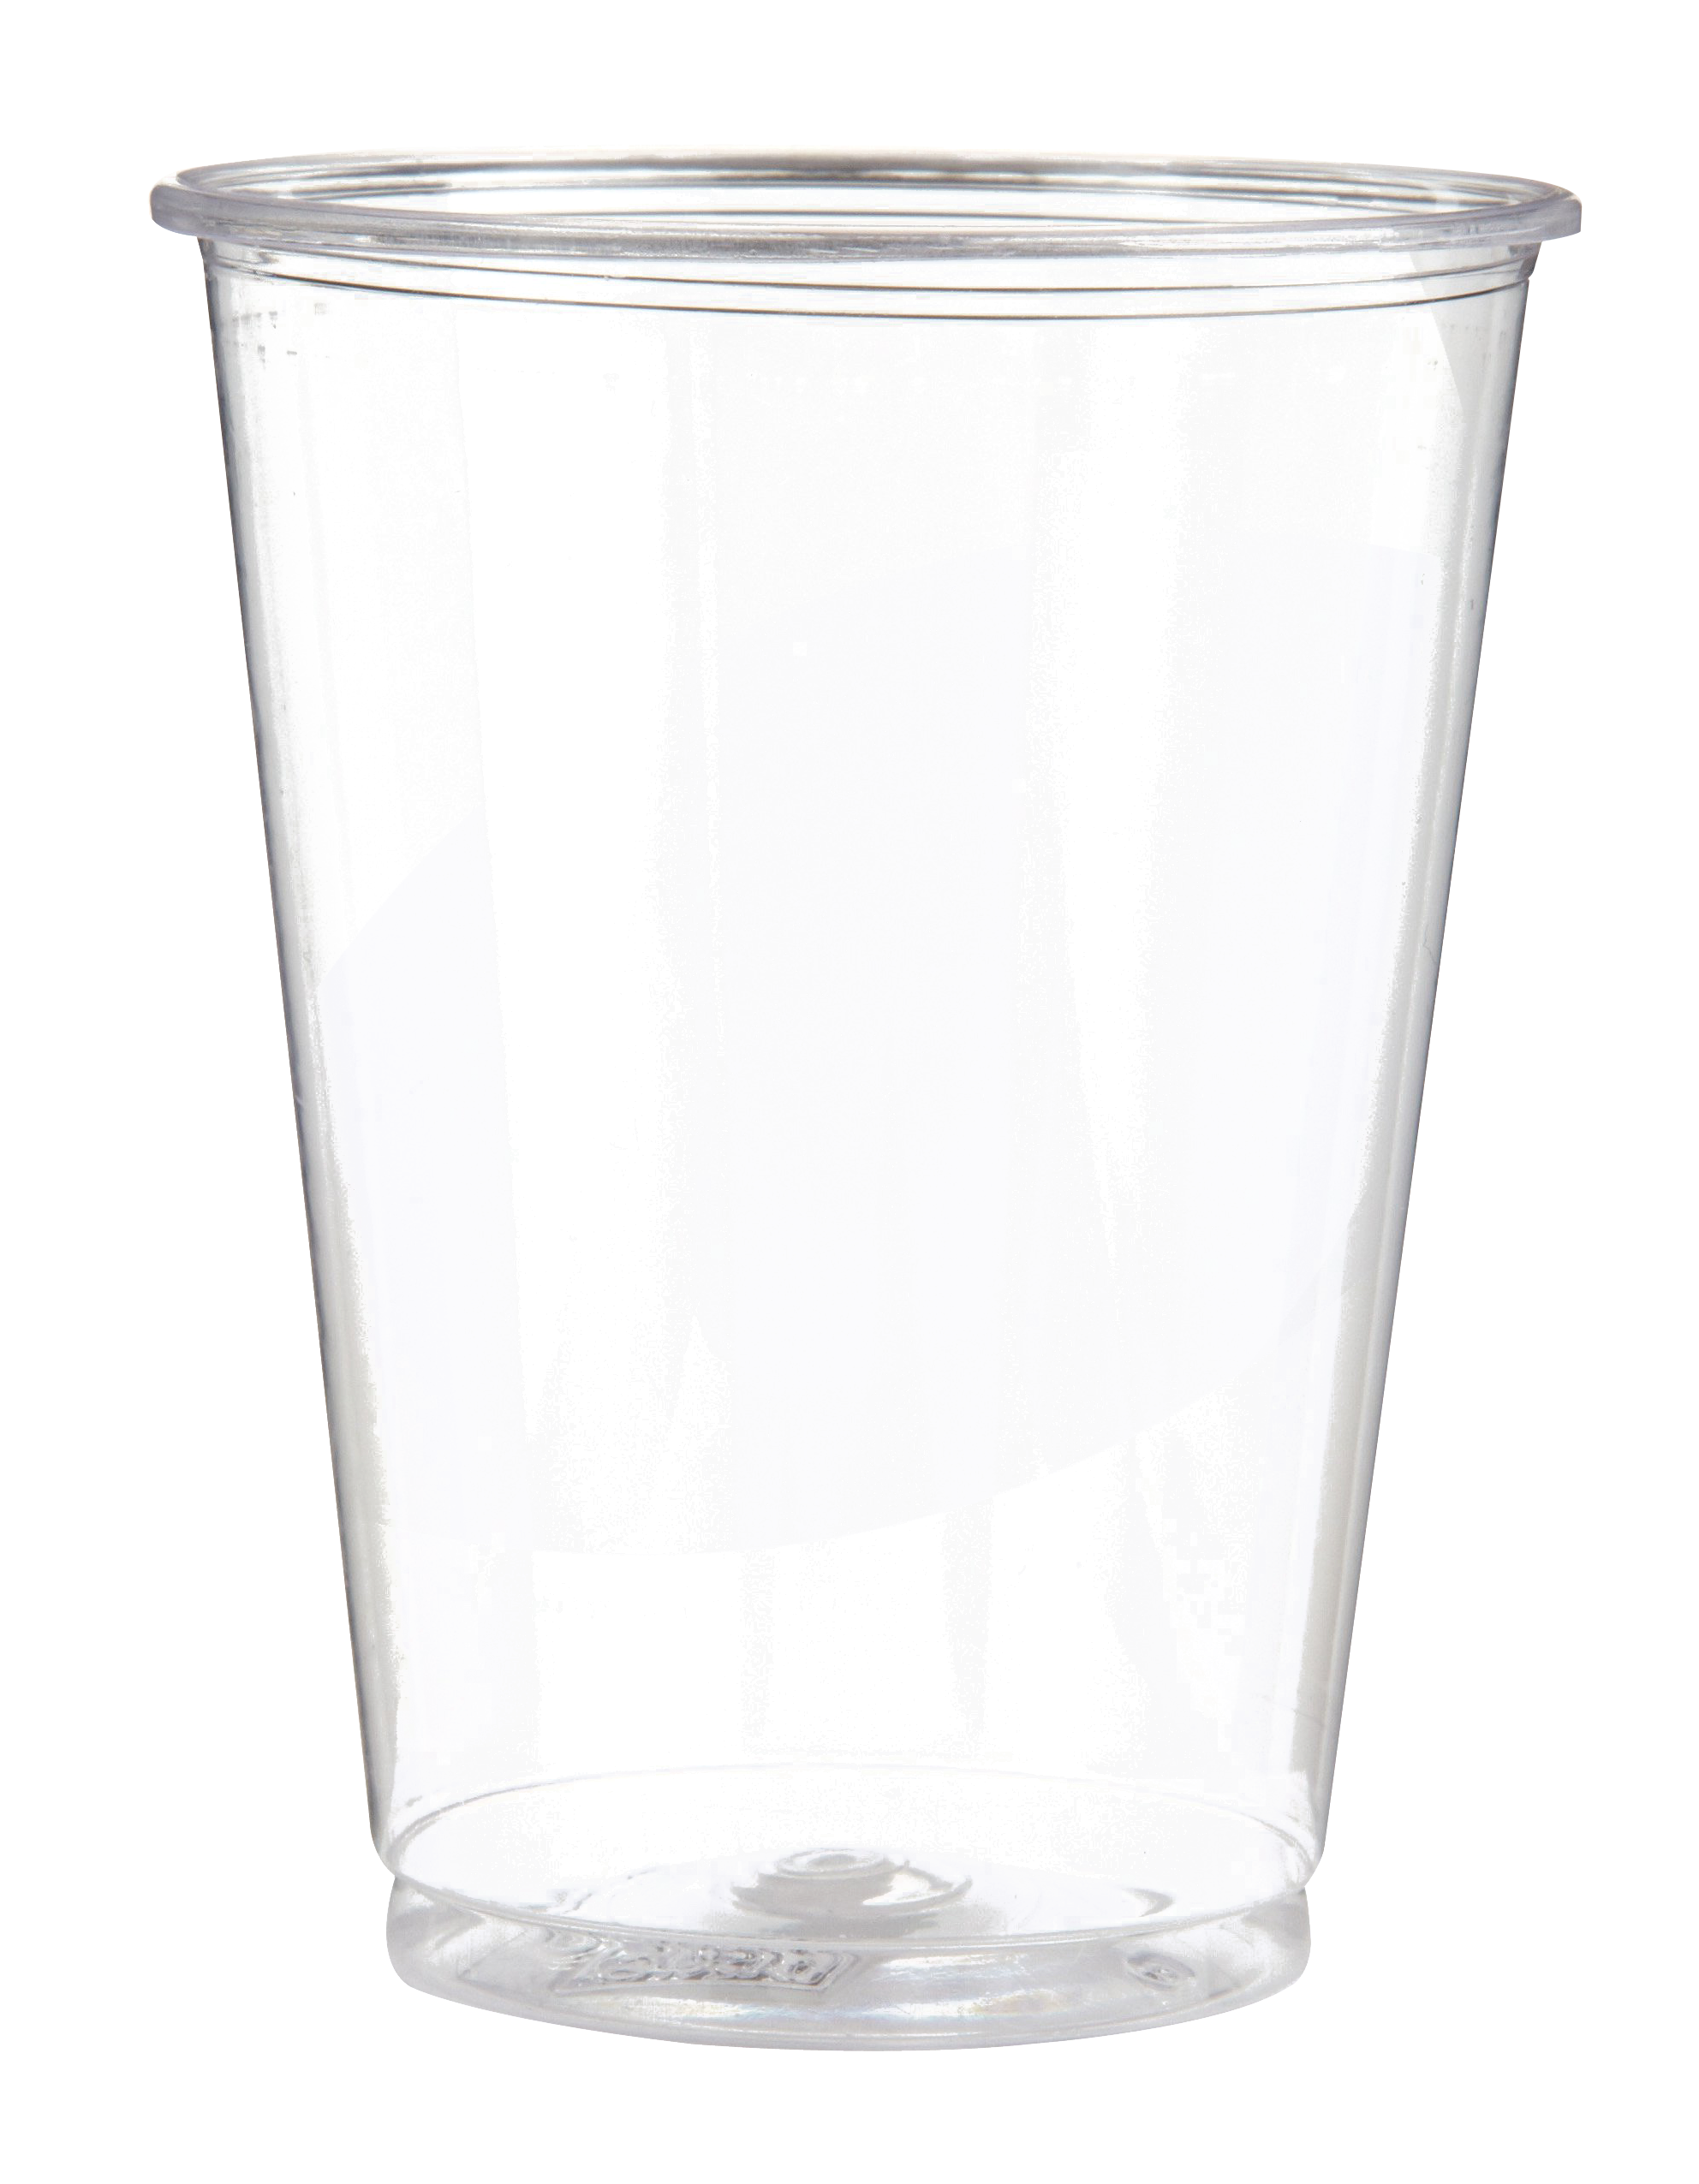 Cup clipart colored plastic. Png image purepng free